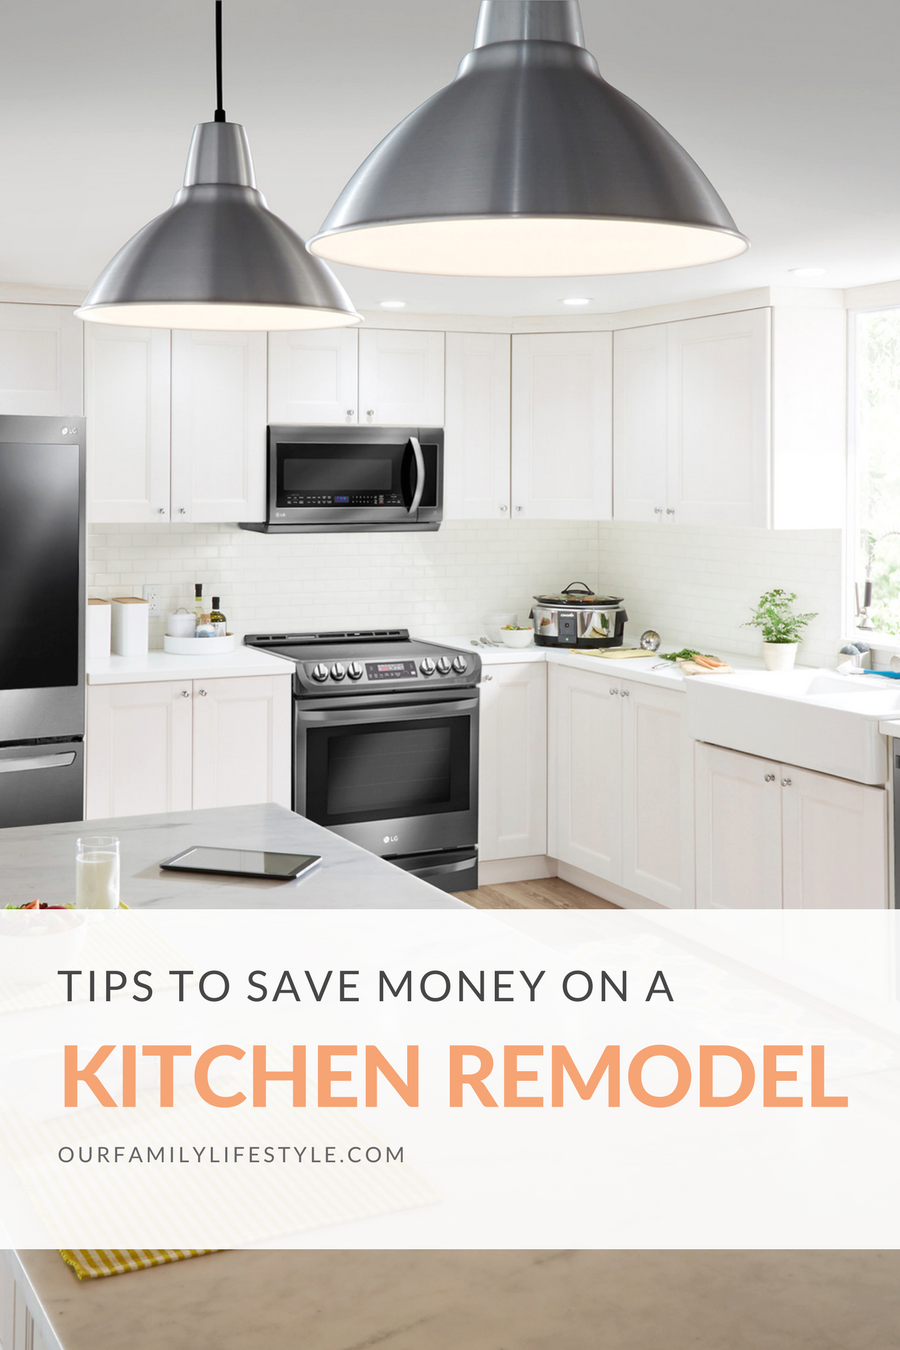 Tips to Save Money on a Kitchen Remodel